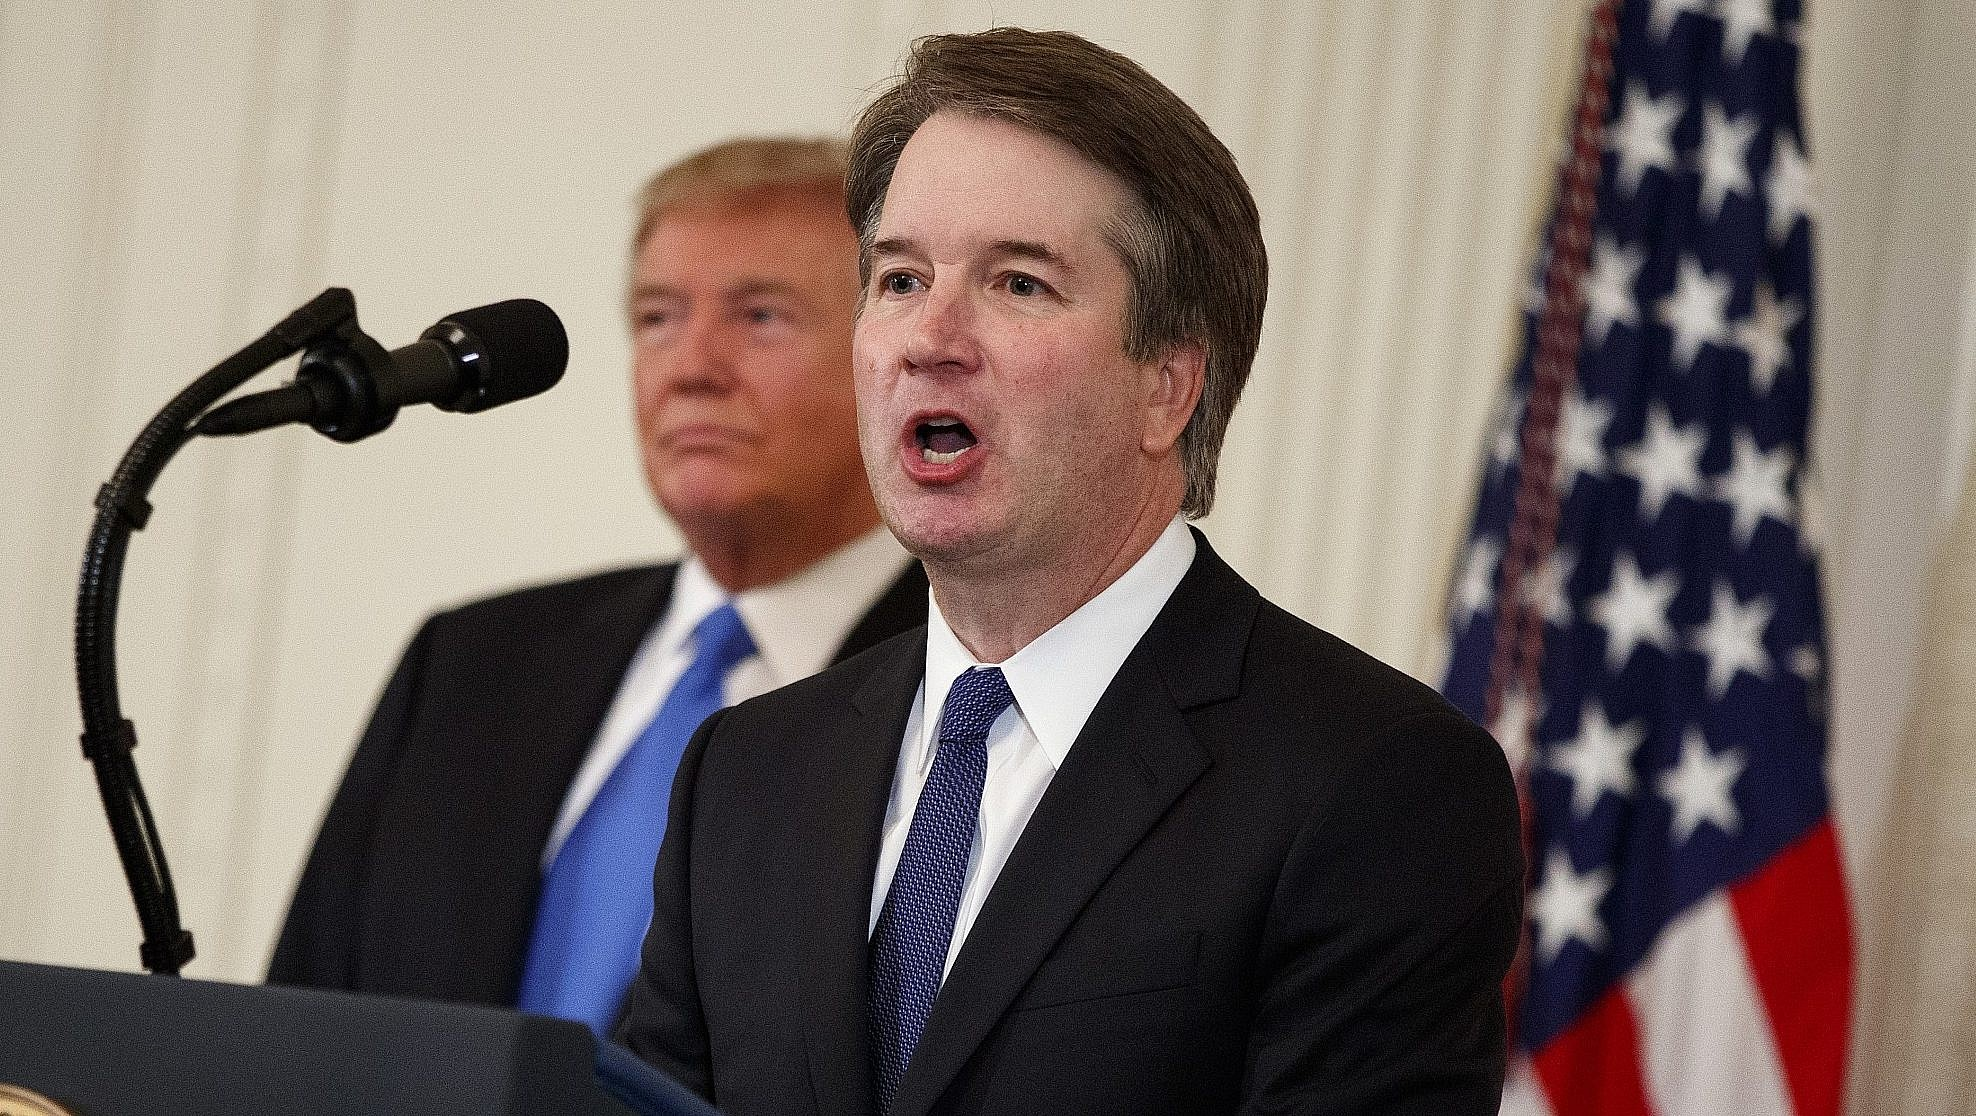 Will Kavanaugh Overrule Scalia To Support Religious